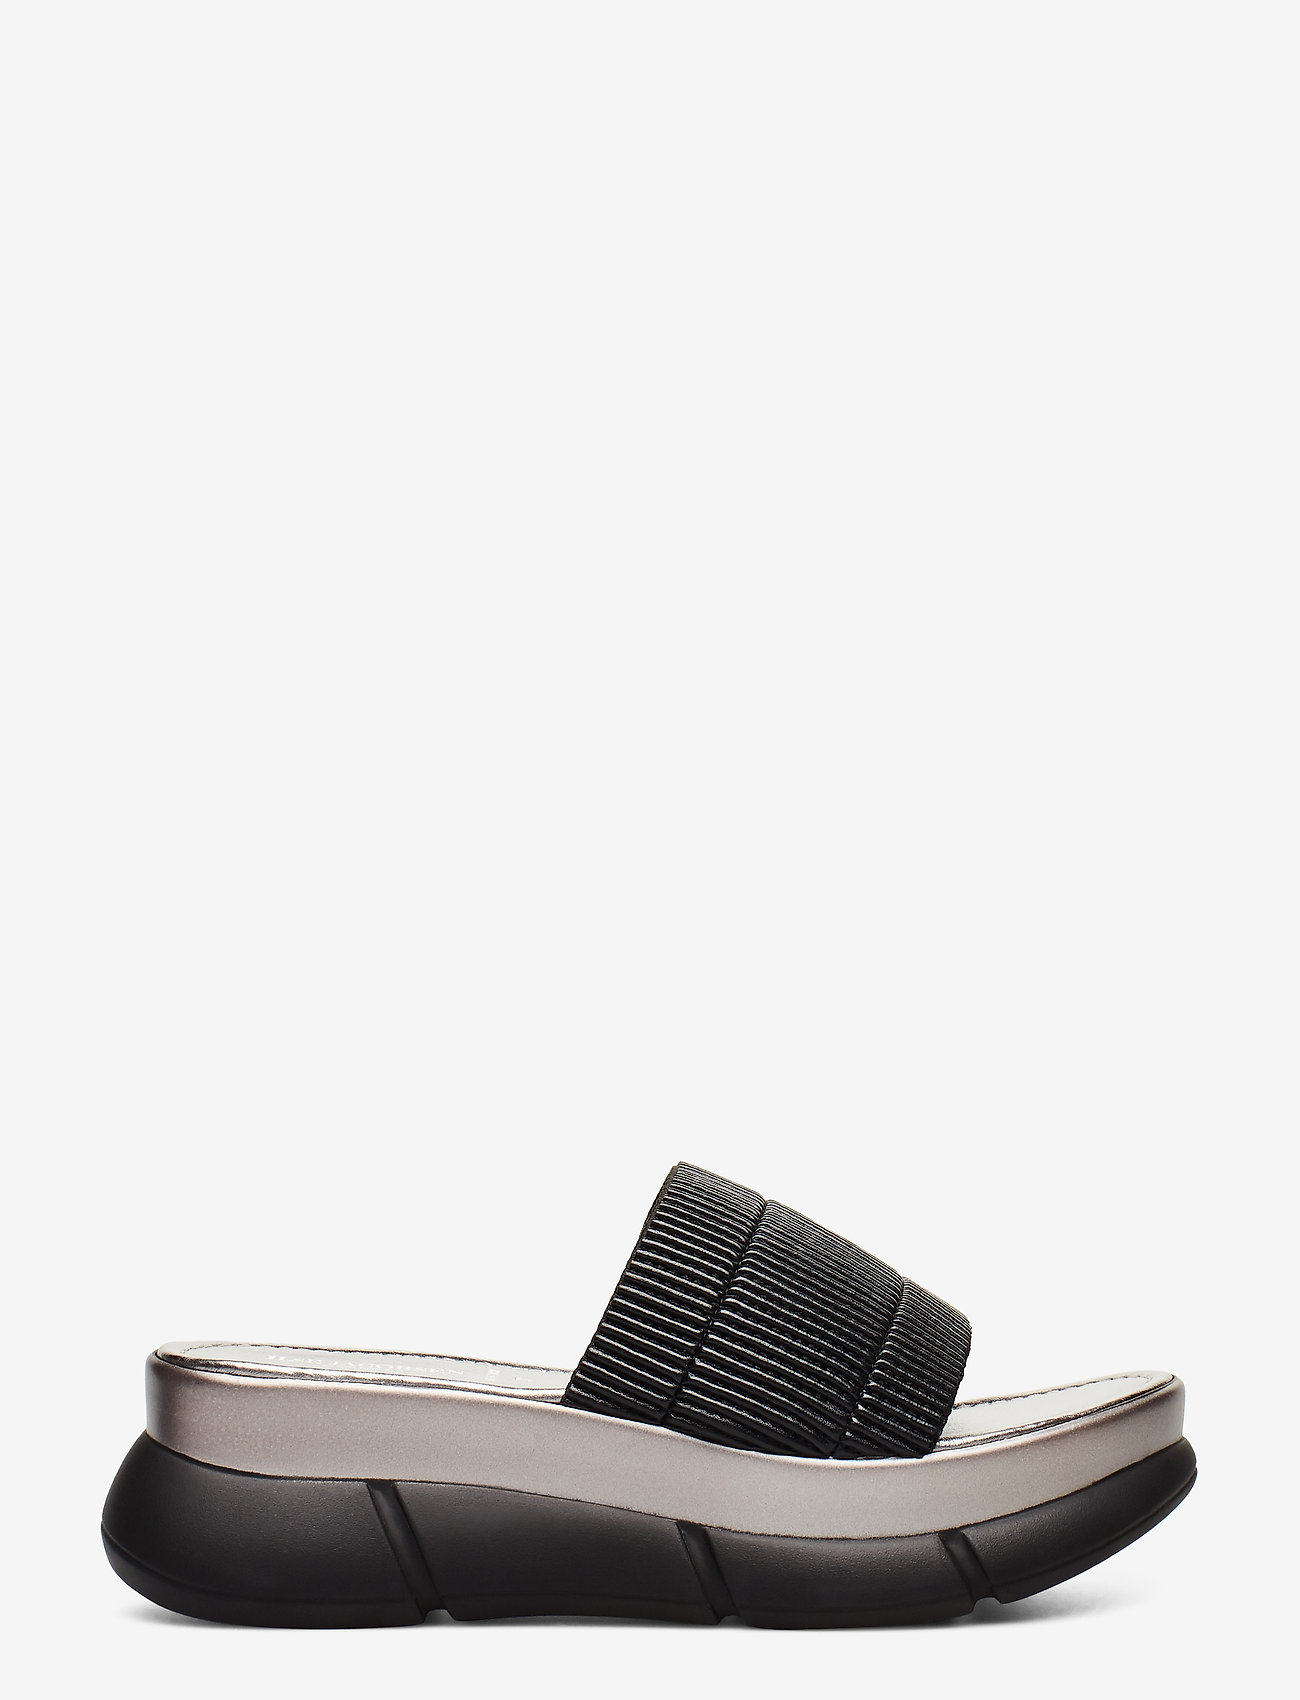 Ilse Jacobsen - SLIP-ON SANDALS - sandales - black - 1